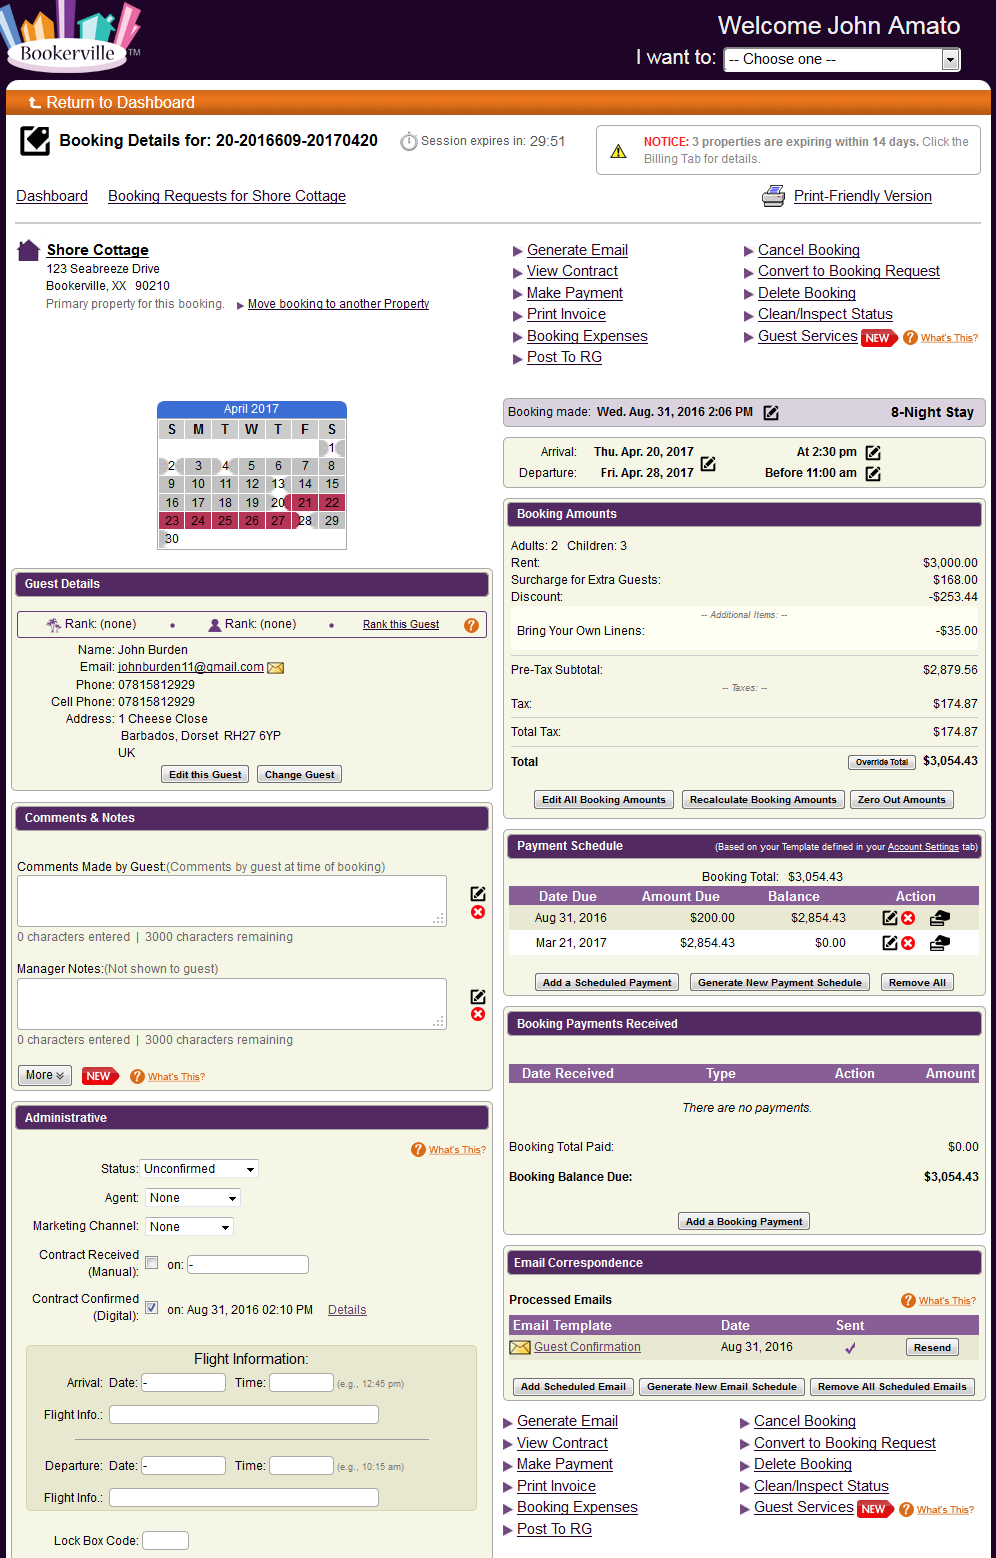 Booking details: everything you need to know about each booking, in a graphical, easy-to-use, mobile-responsive page.